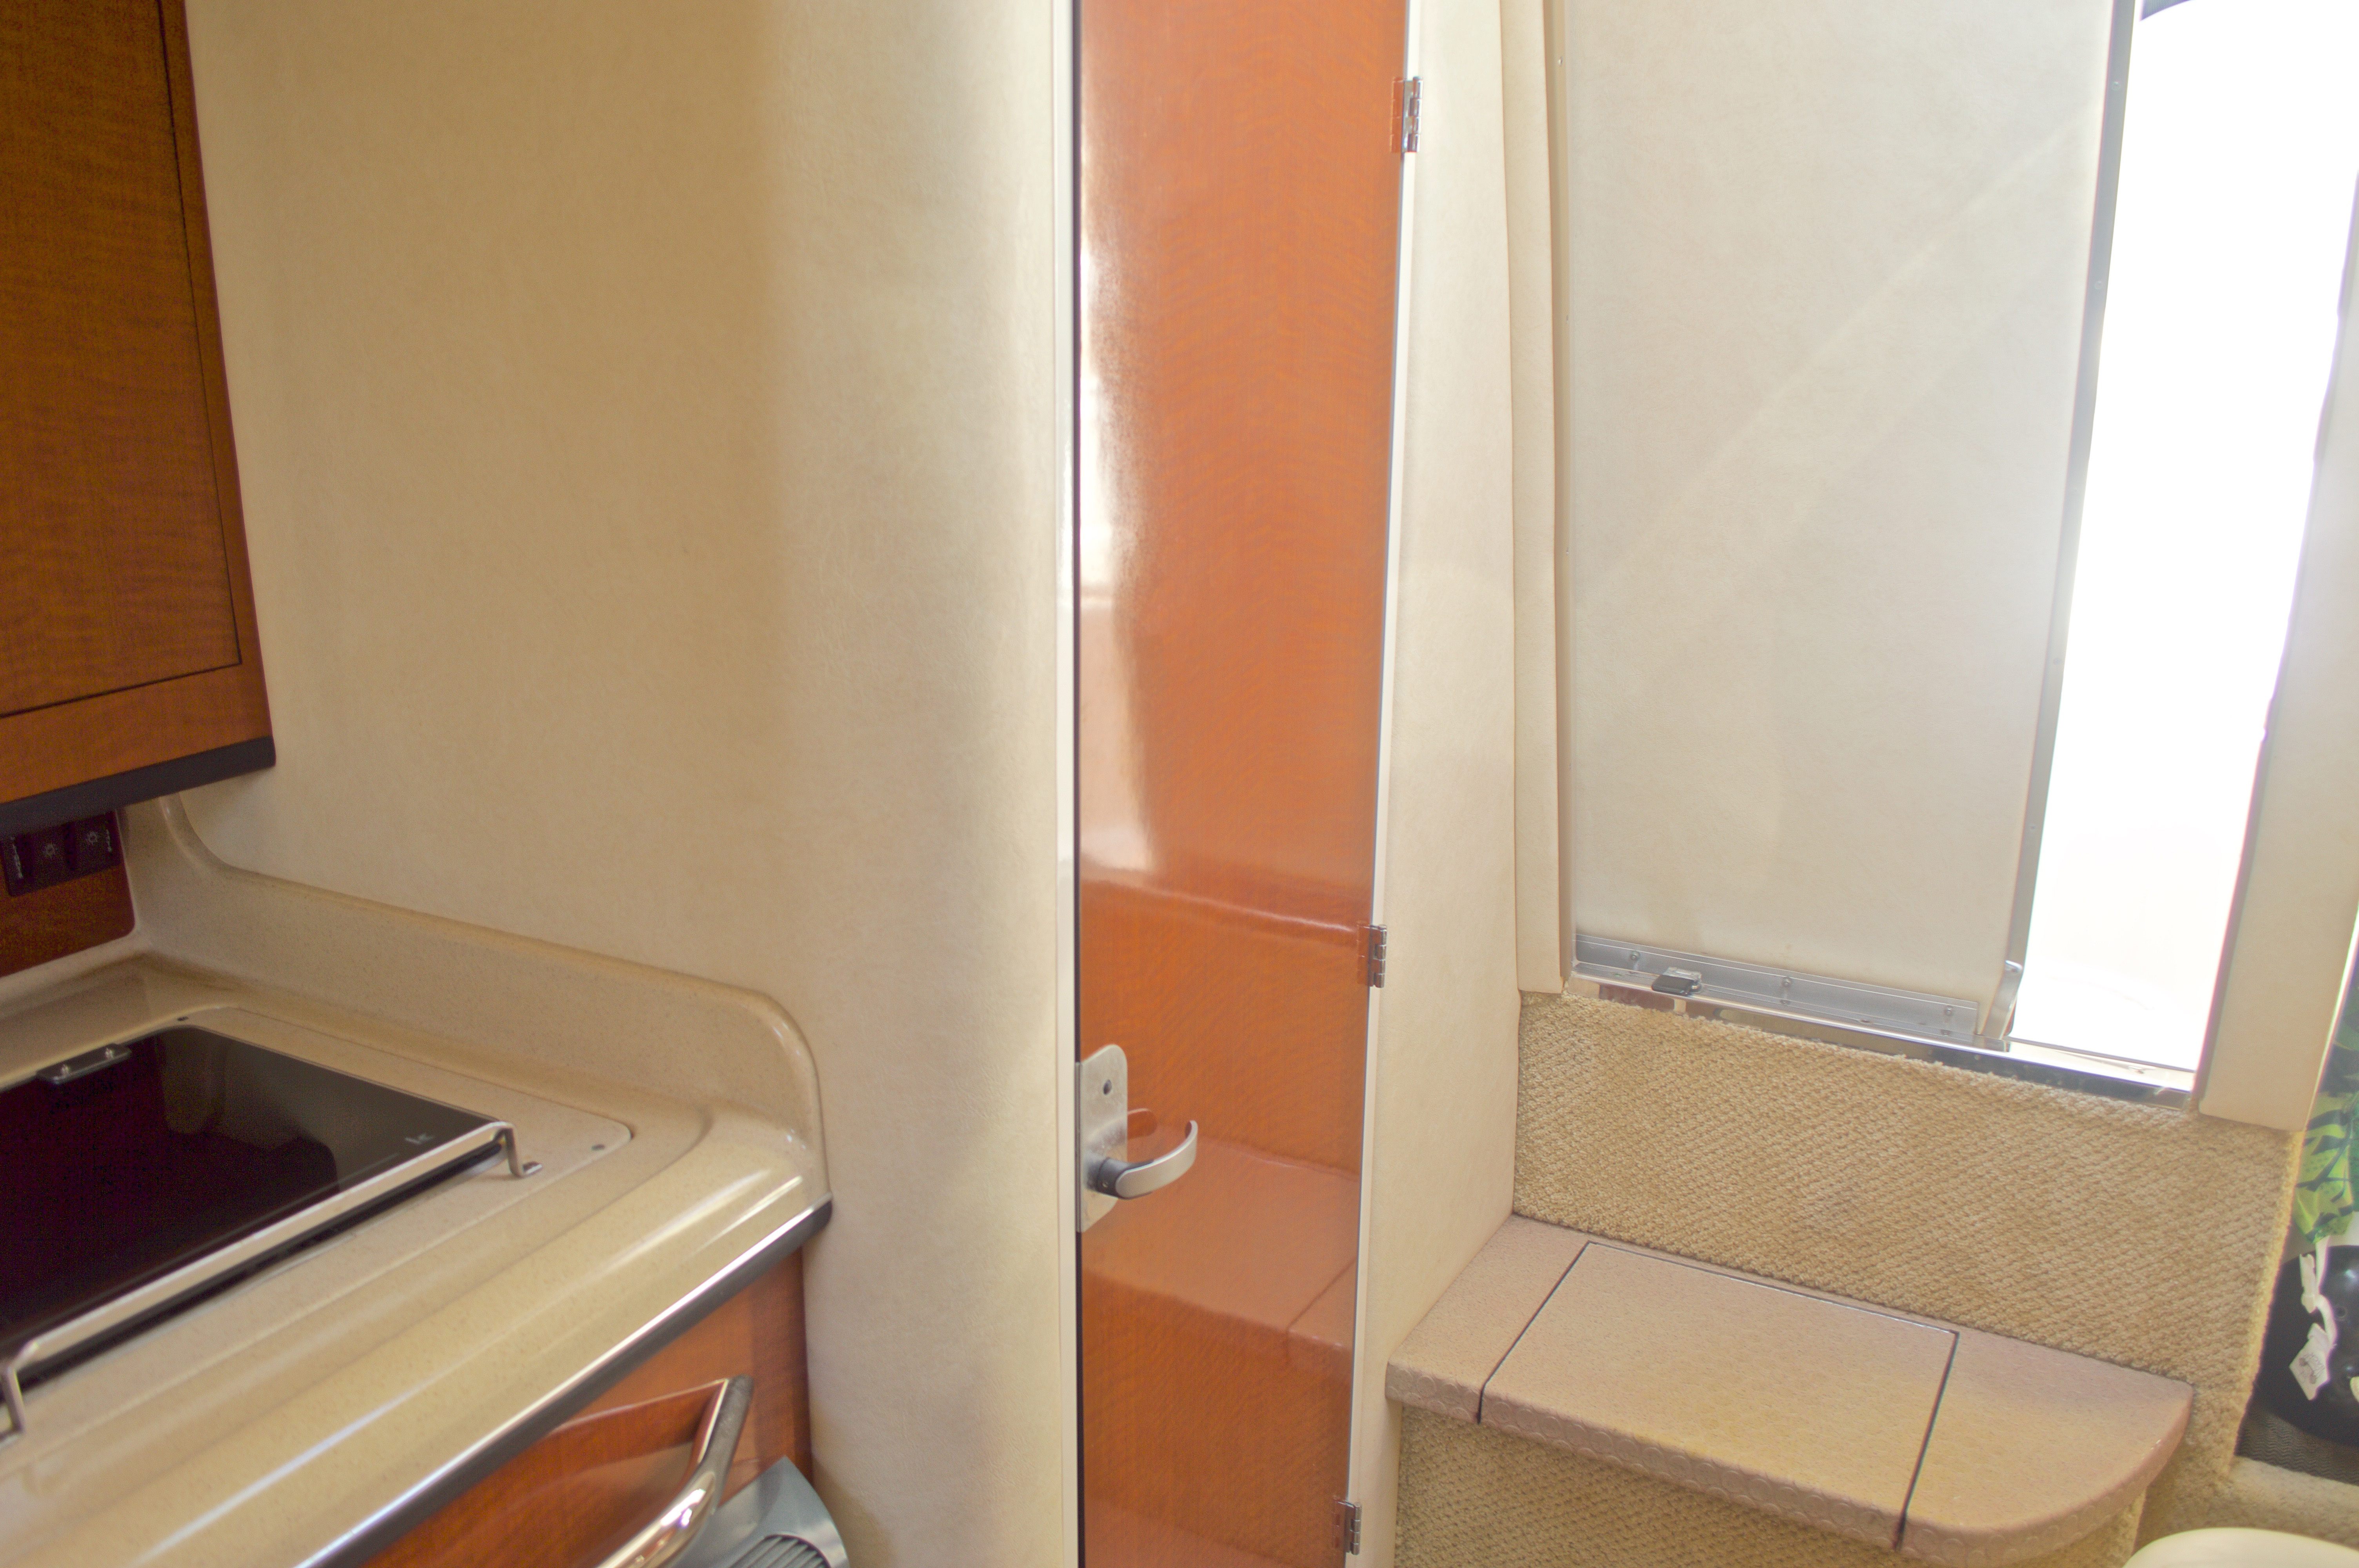 Thumbnail 59 for Used 2005 Sea Ray 280 Sundancer boat for sale in West Palm Beach, FL